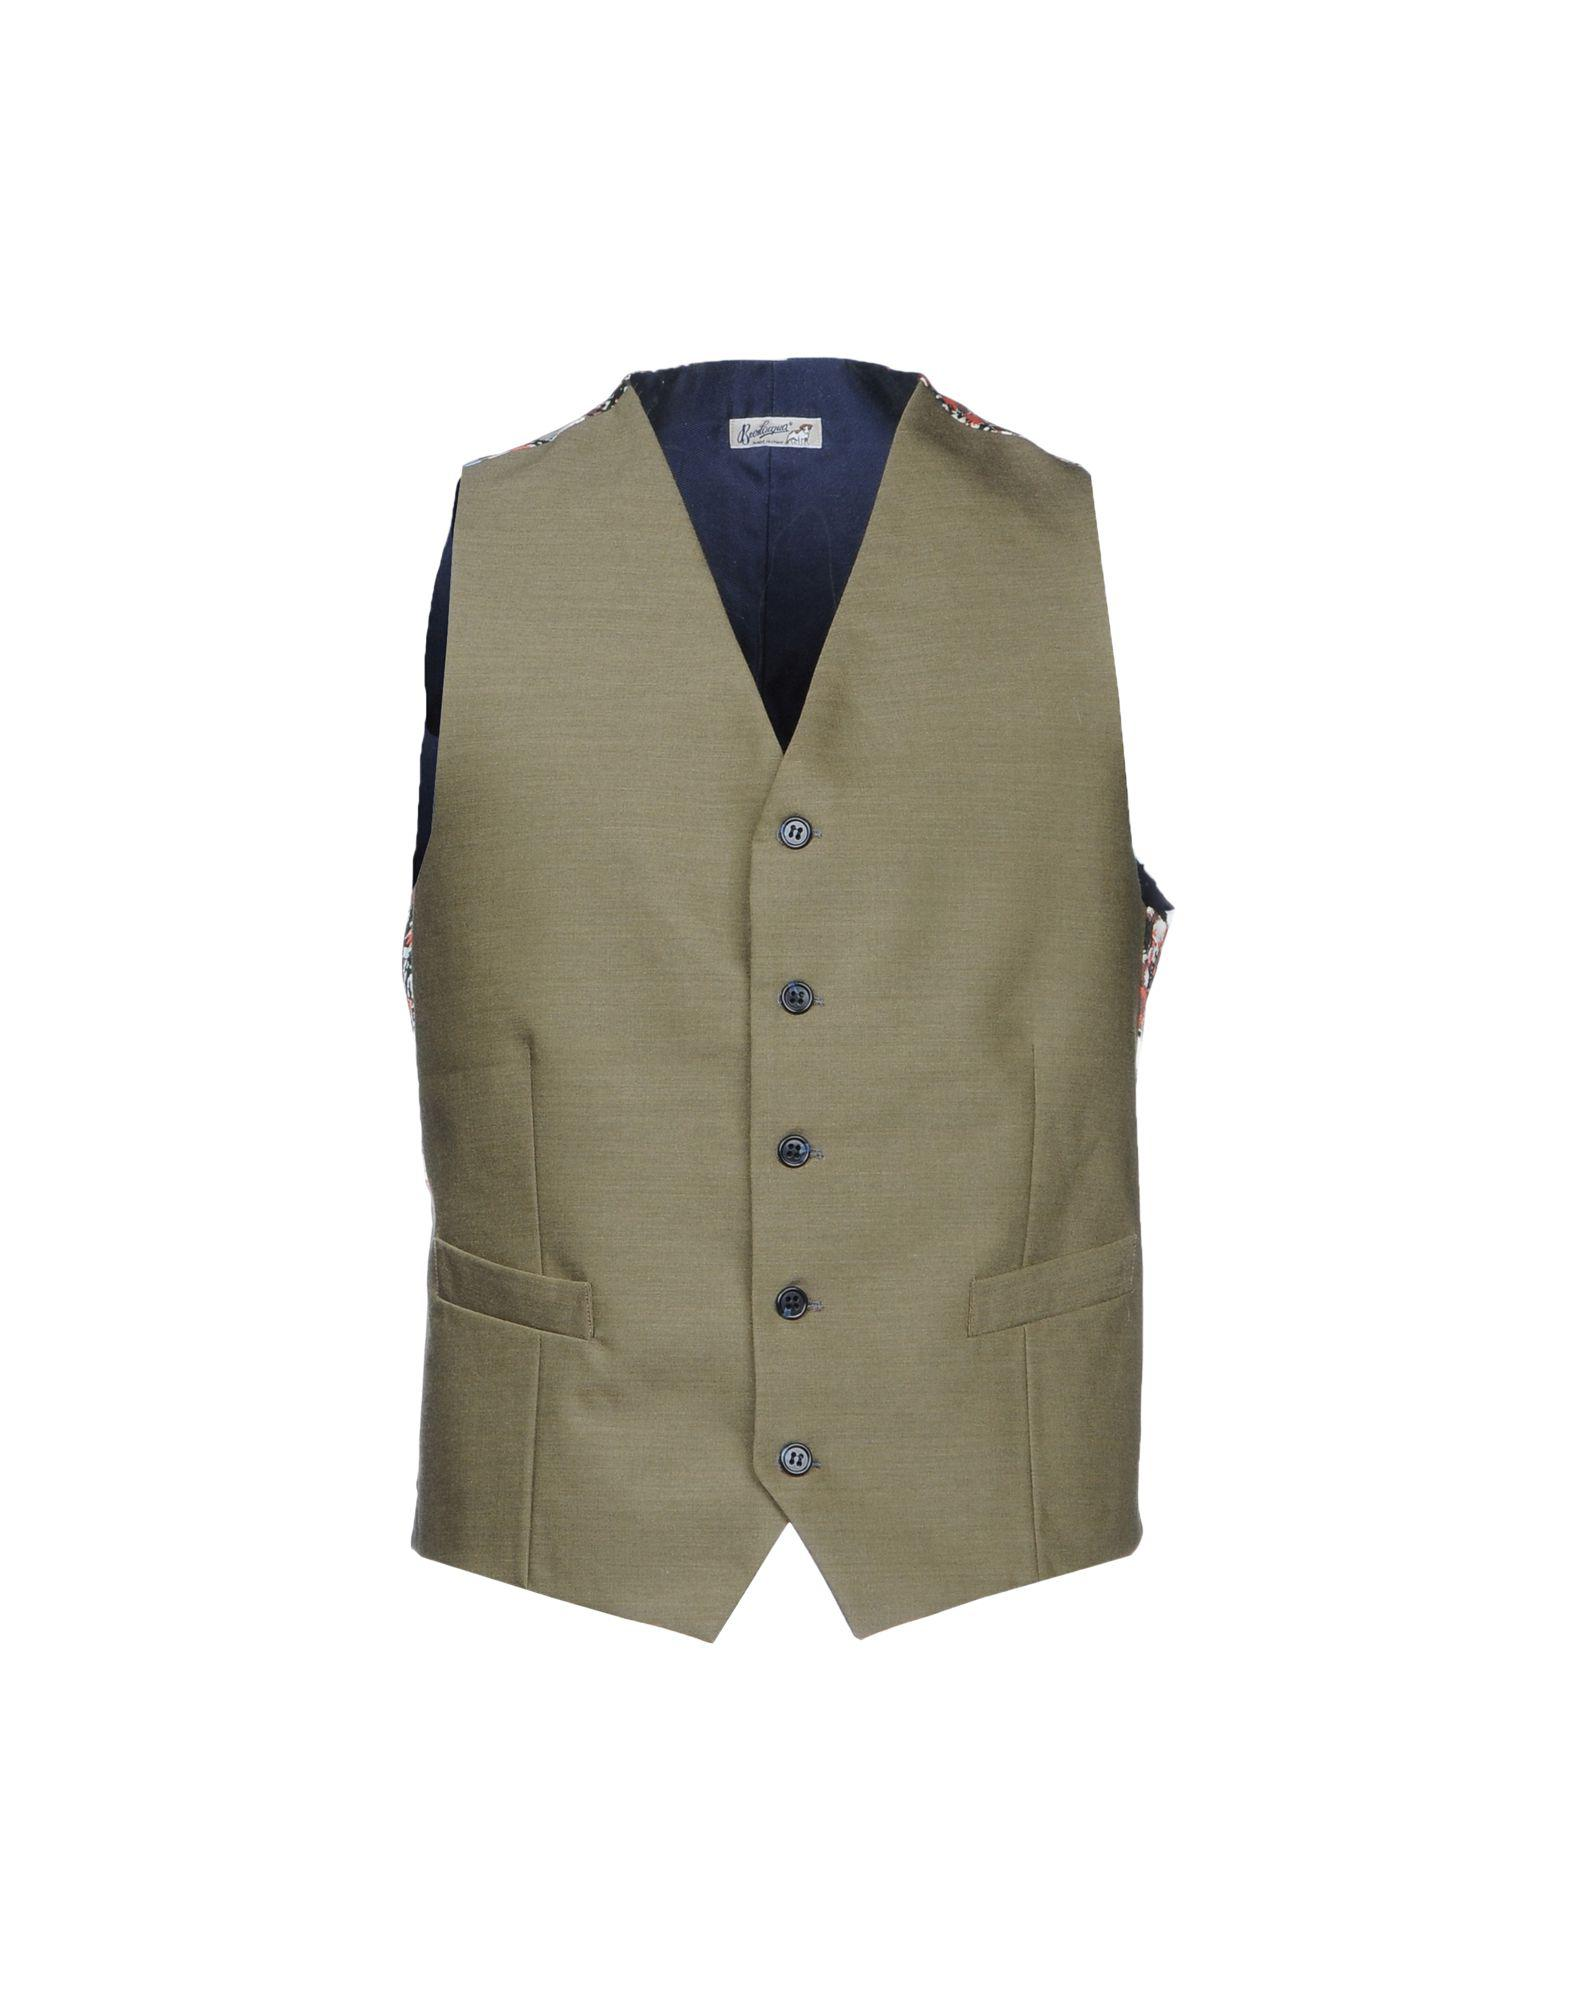 SUITS AND JACKETS - Waistcoats Bevilacqua Buy Cheap Prices Buy Cheap Recommend Manchester Cheap Online Largest Supplier Where To Buy Low Price K9COZx